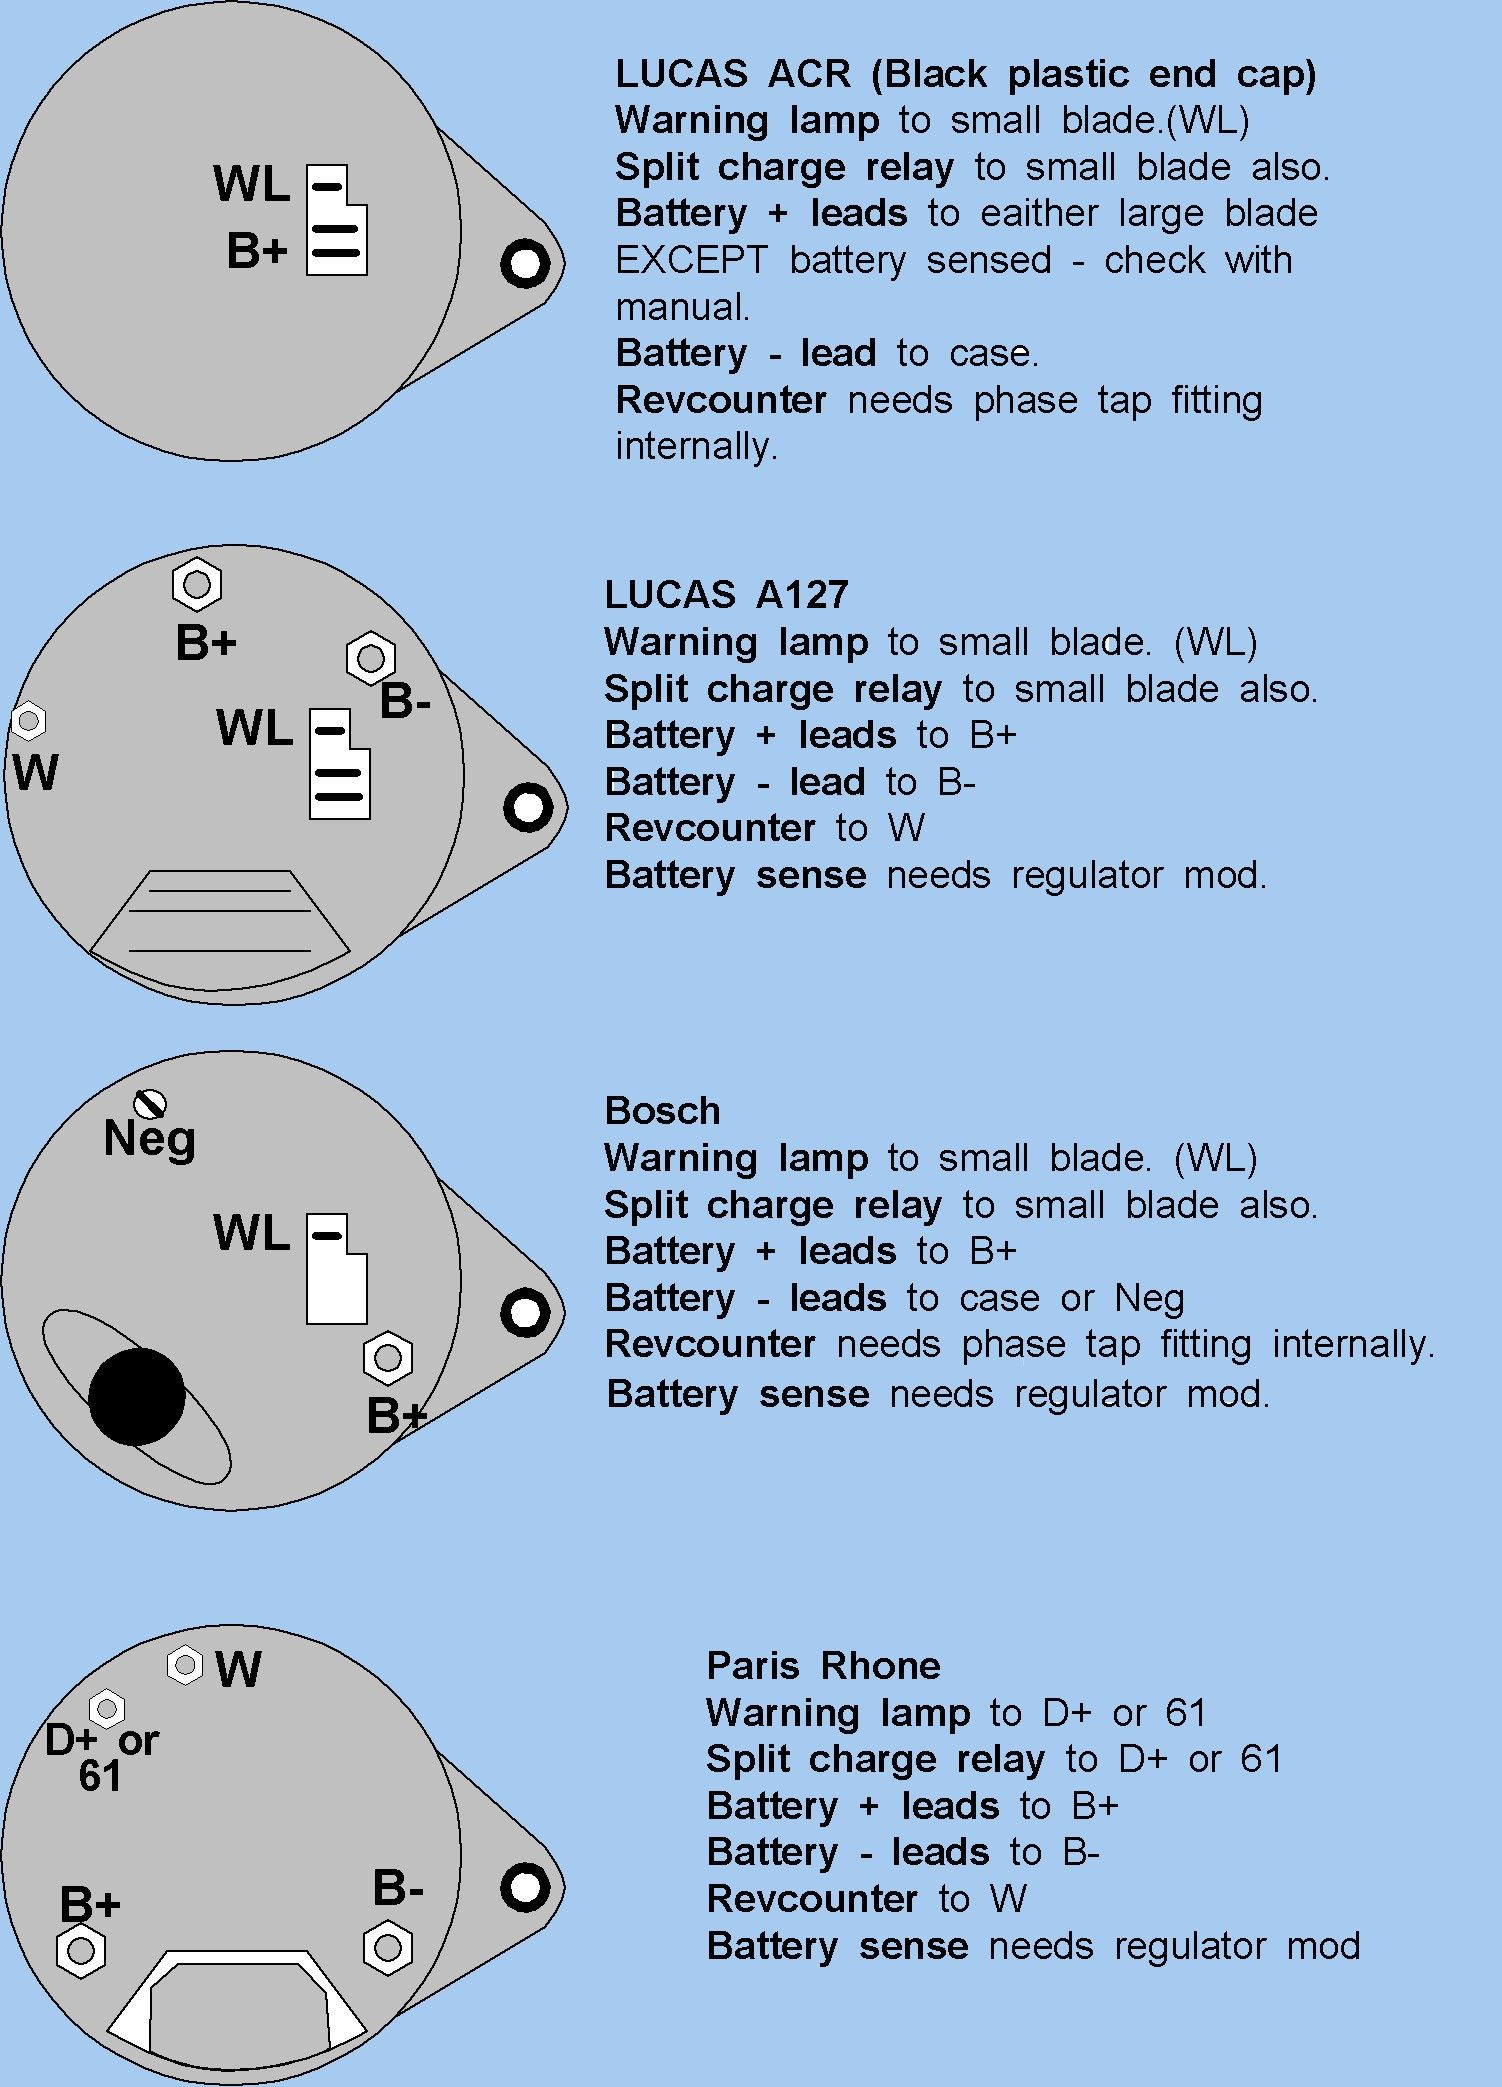 wiring diagram a127 lucas alternator wiring diagram toolbox lucas alternator wiring sense check lucas alternator wiring sense check [ 1502 x 2087 Pixel ]